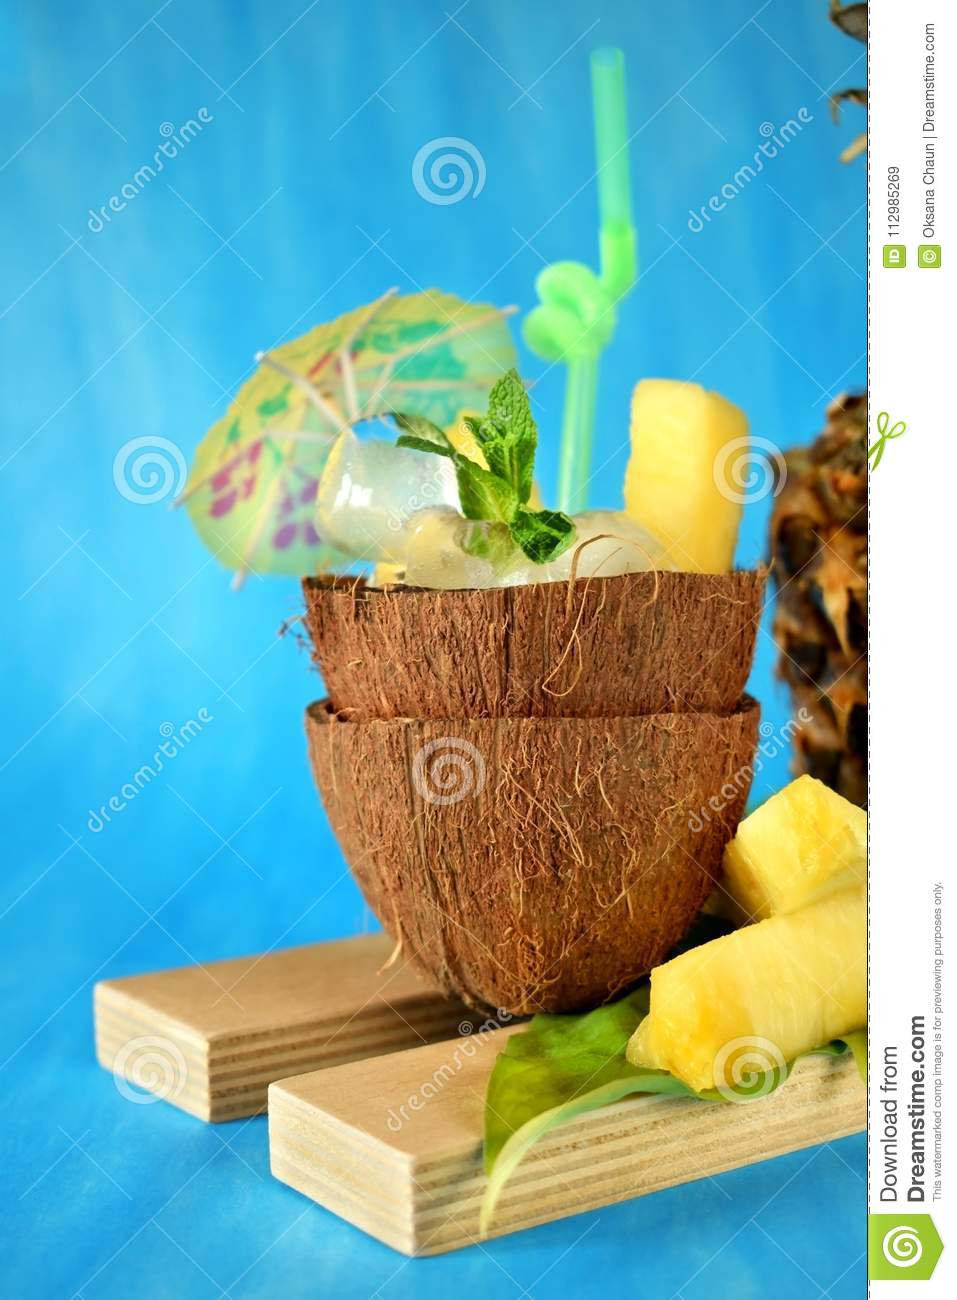 Ice cubes and pineapple pieces served in a coconut half decorated with an umbrella and straw on blue background